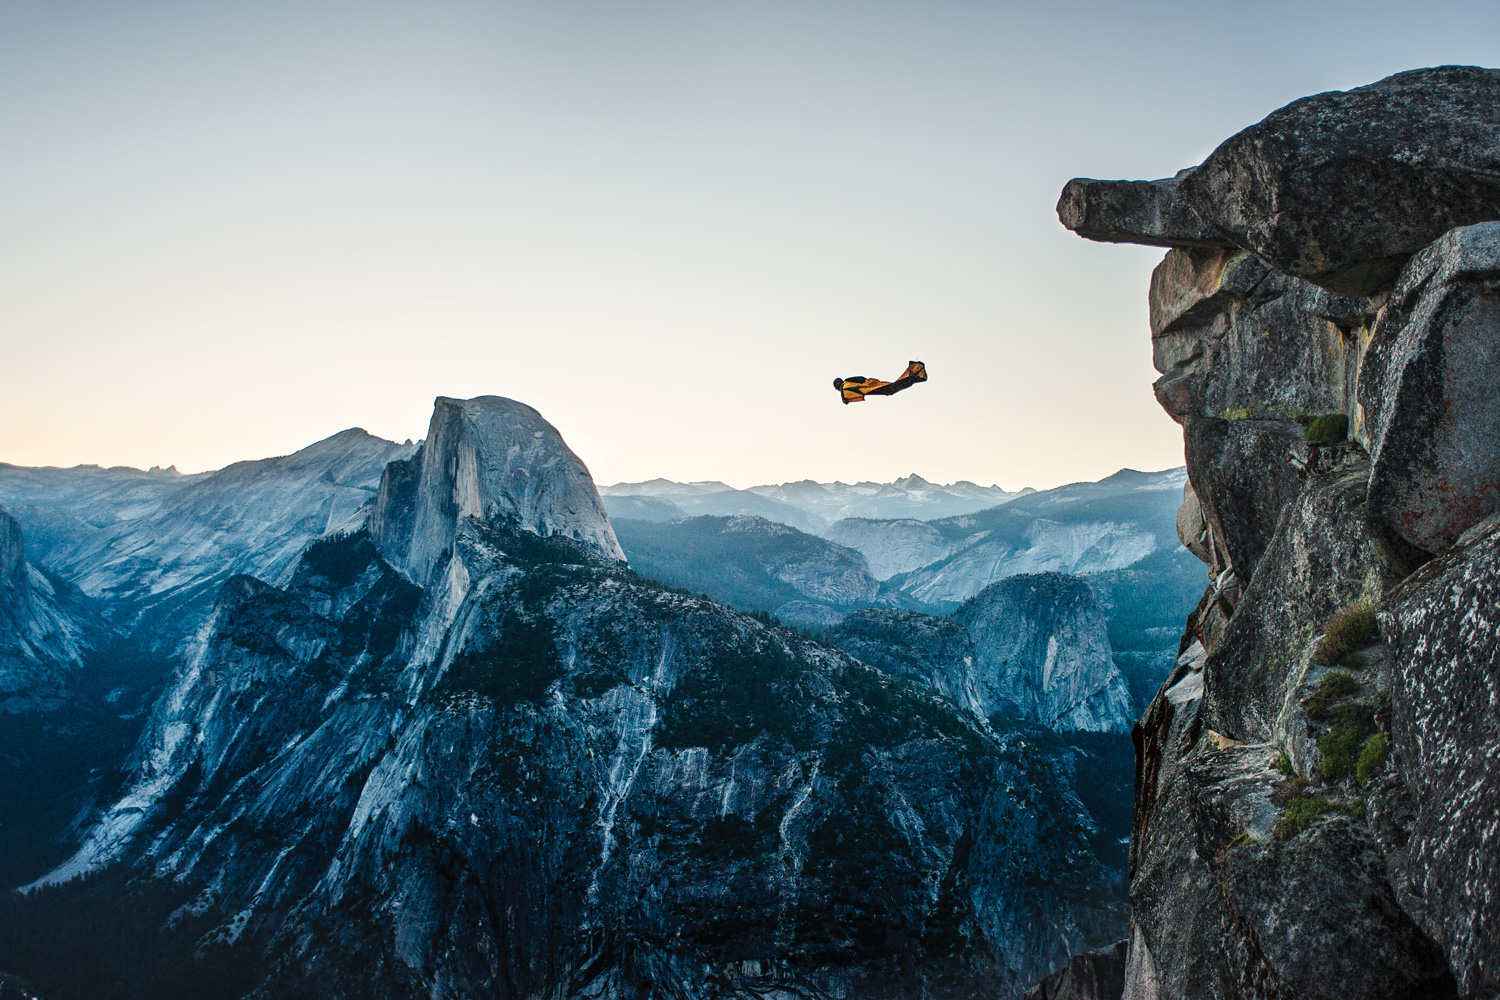 Deaths renew calls for national parks to rescind BASE jumping bans